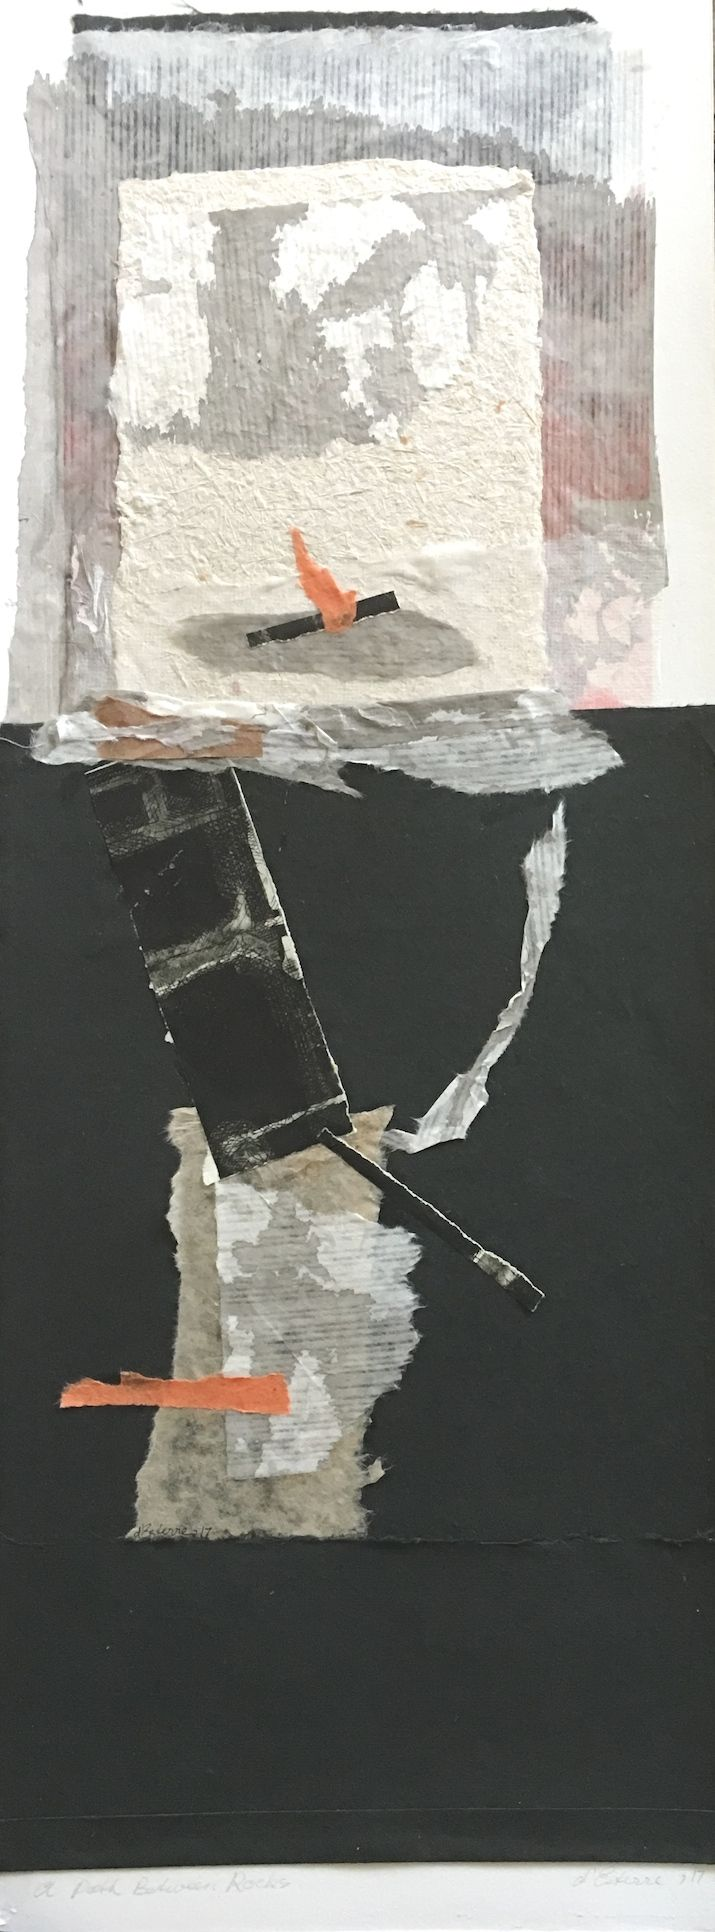 Elaine d'Esterre - A Path Between Rocks, 2017, intaglio, handmade paper and chine colle, 75x30 cm. Visit my ART BLOG at http://elainedesterreart.com/ and http://www.facebook.com/elainedesterreart/ and http://instagram.com/desterreart/